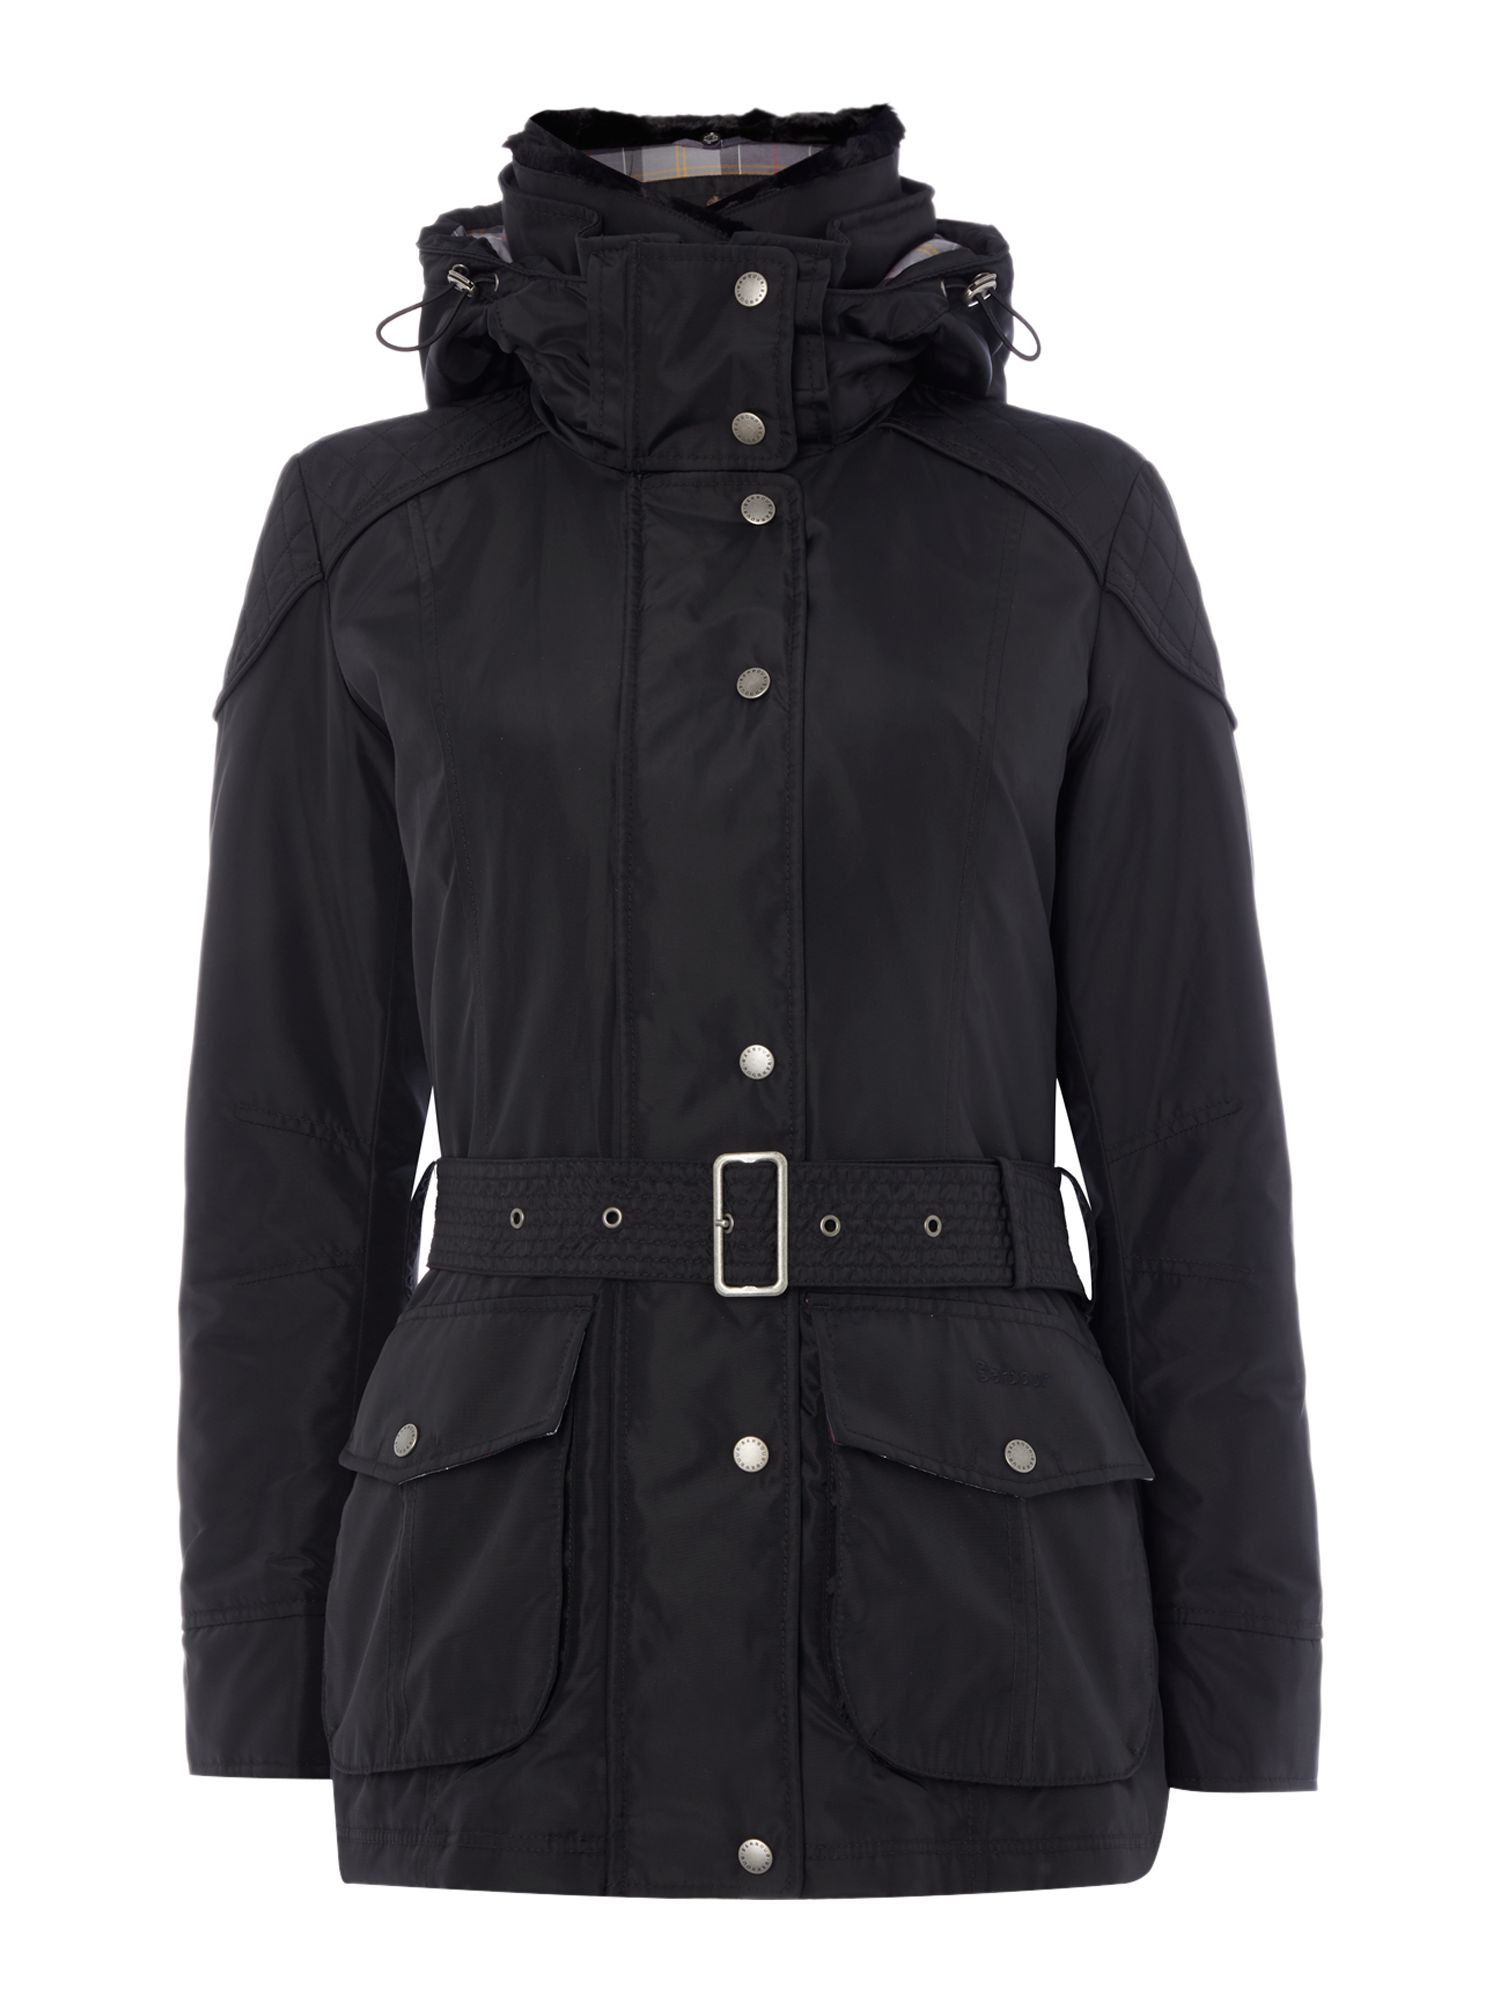 Barbour Outlaw Belted Jacket, Black